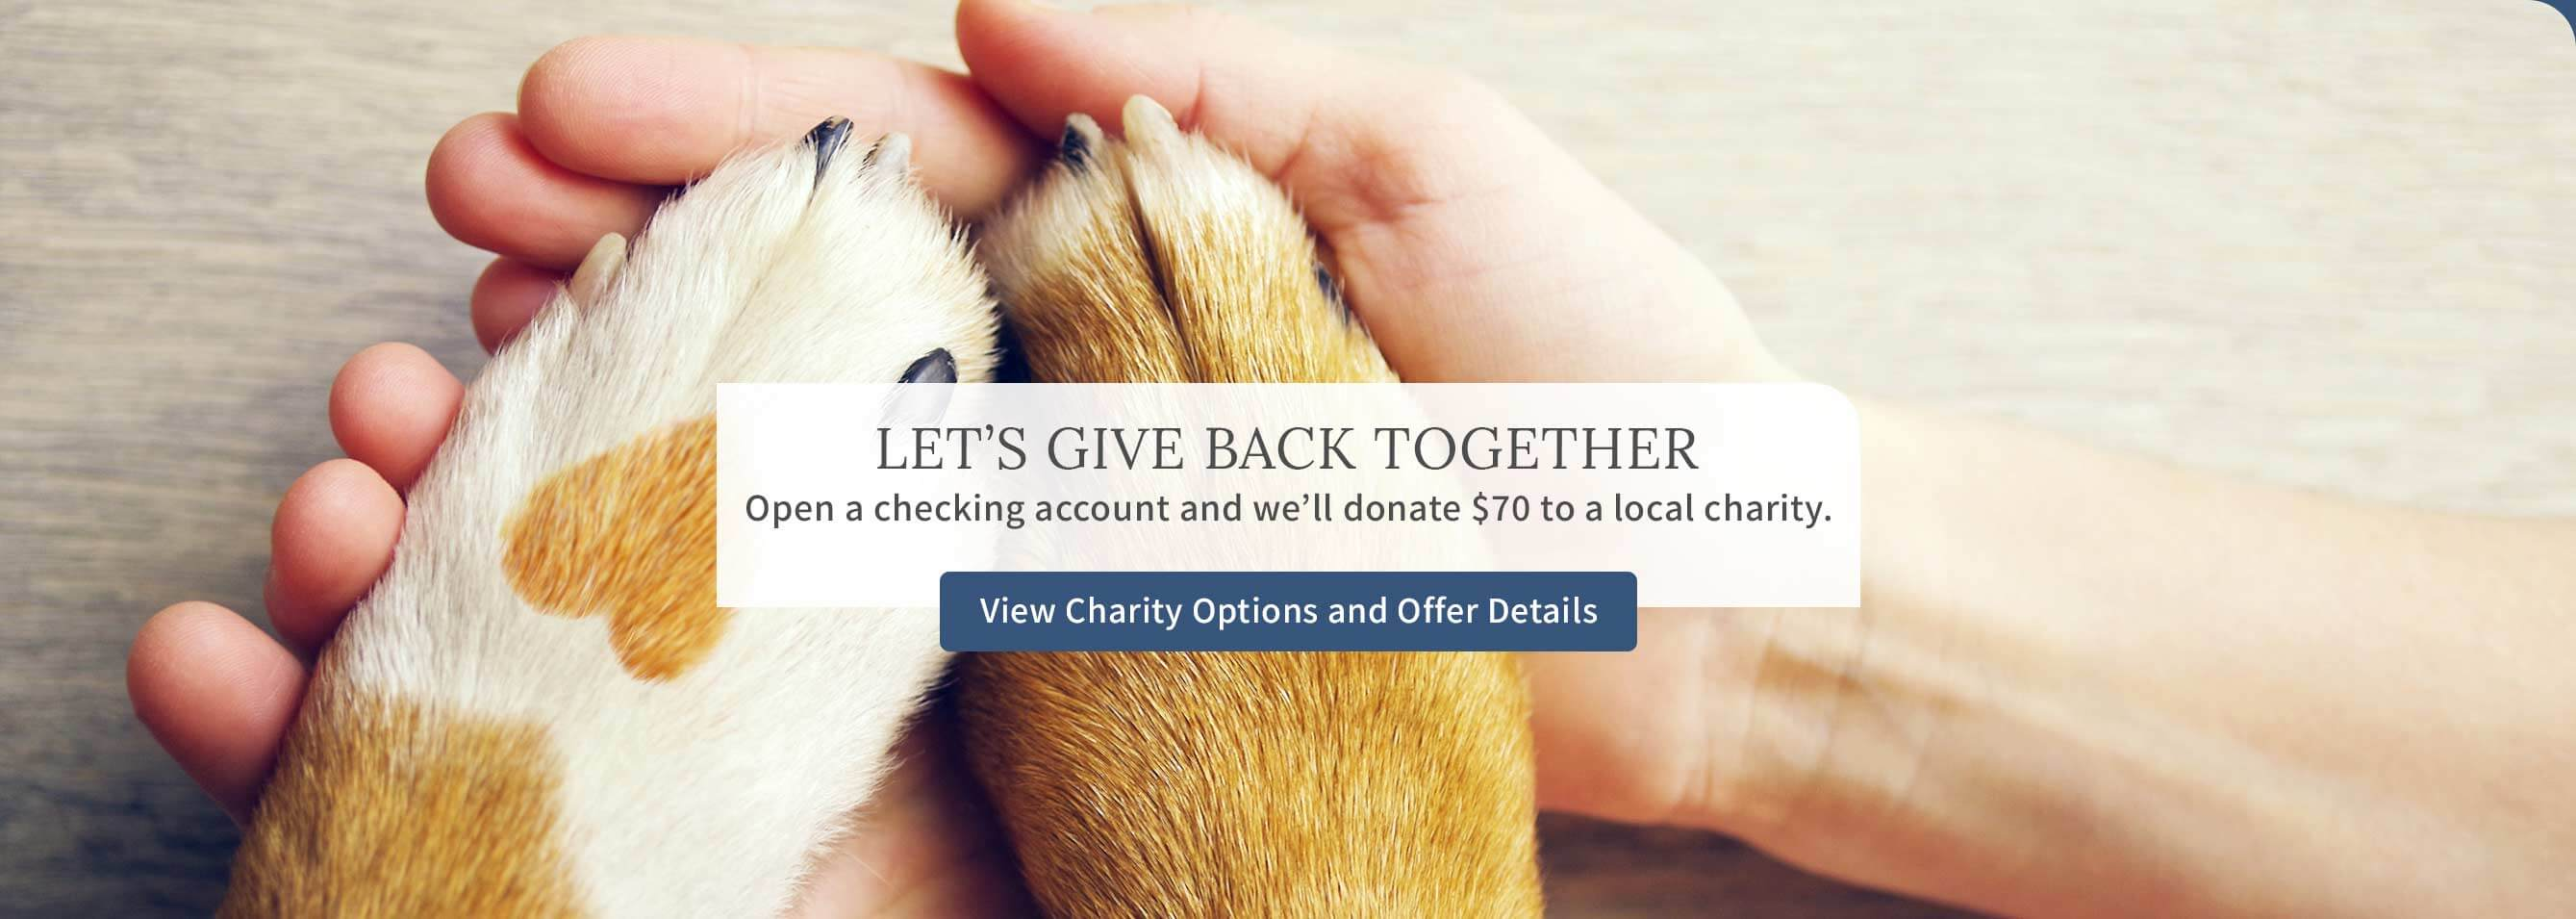 Let's give back together. Open a checking account and we'll donate $70 to a local charity. View Charity Options and Offer Details